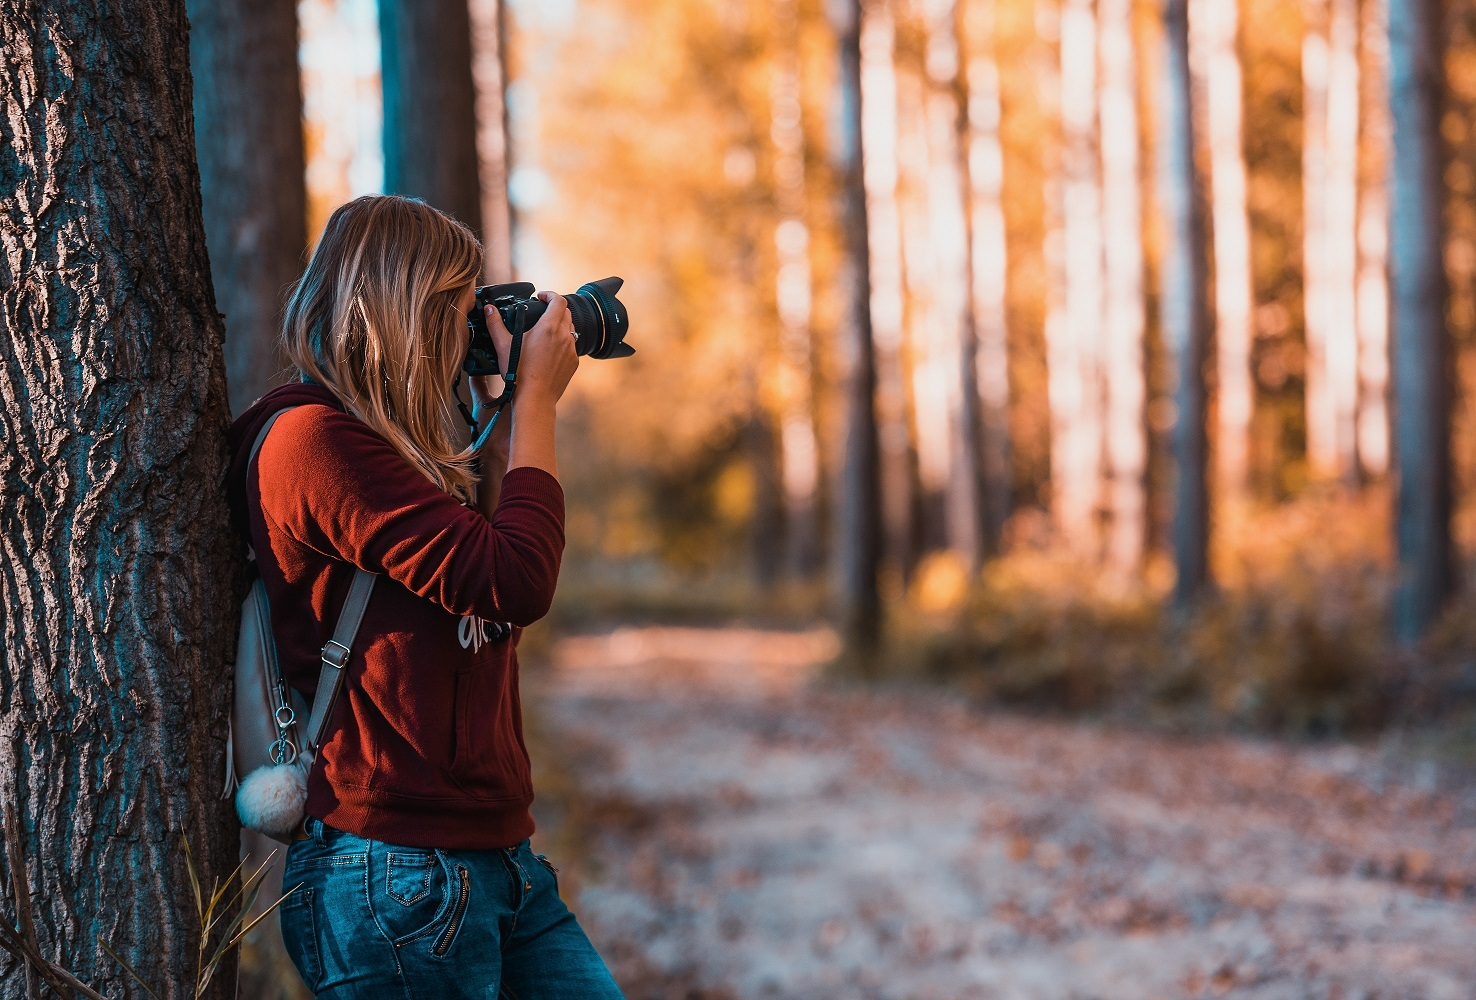 Hundreds of Entries Received for Photography Competition As Judging Begins